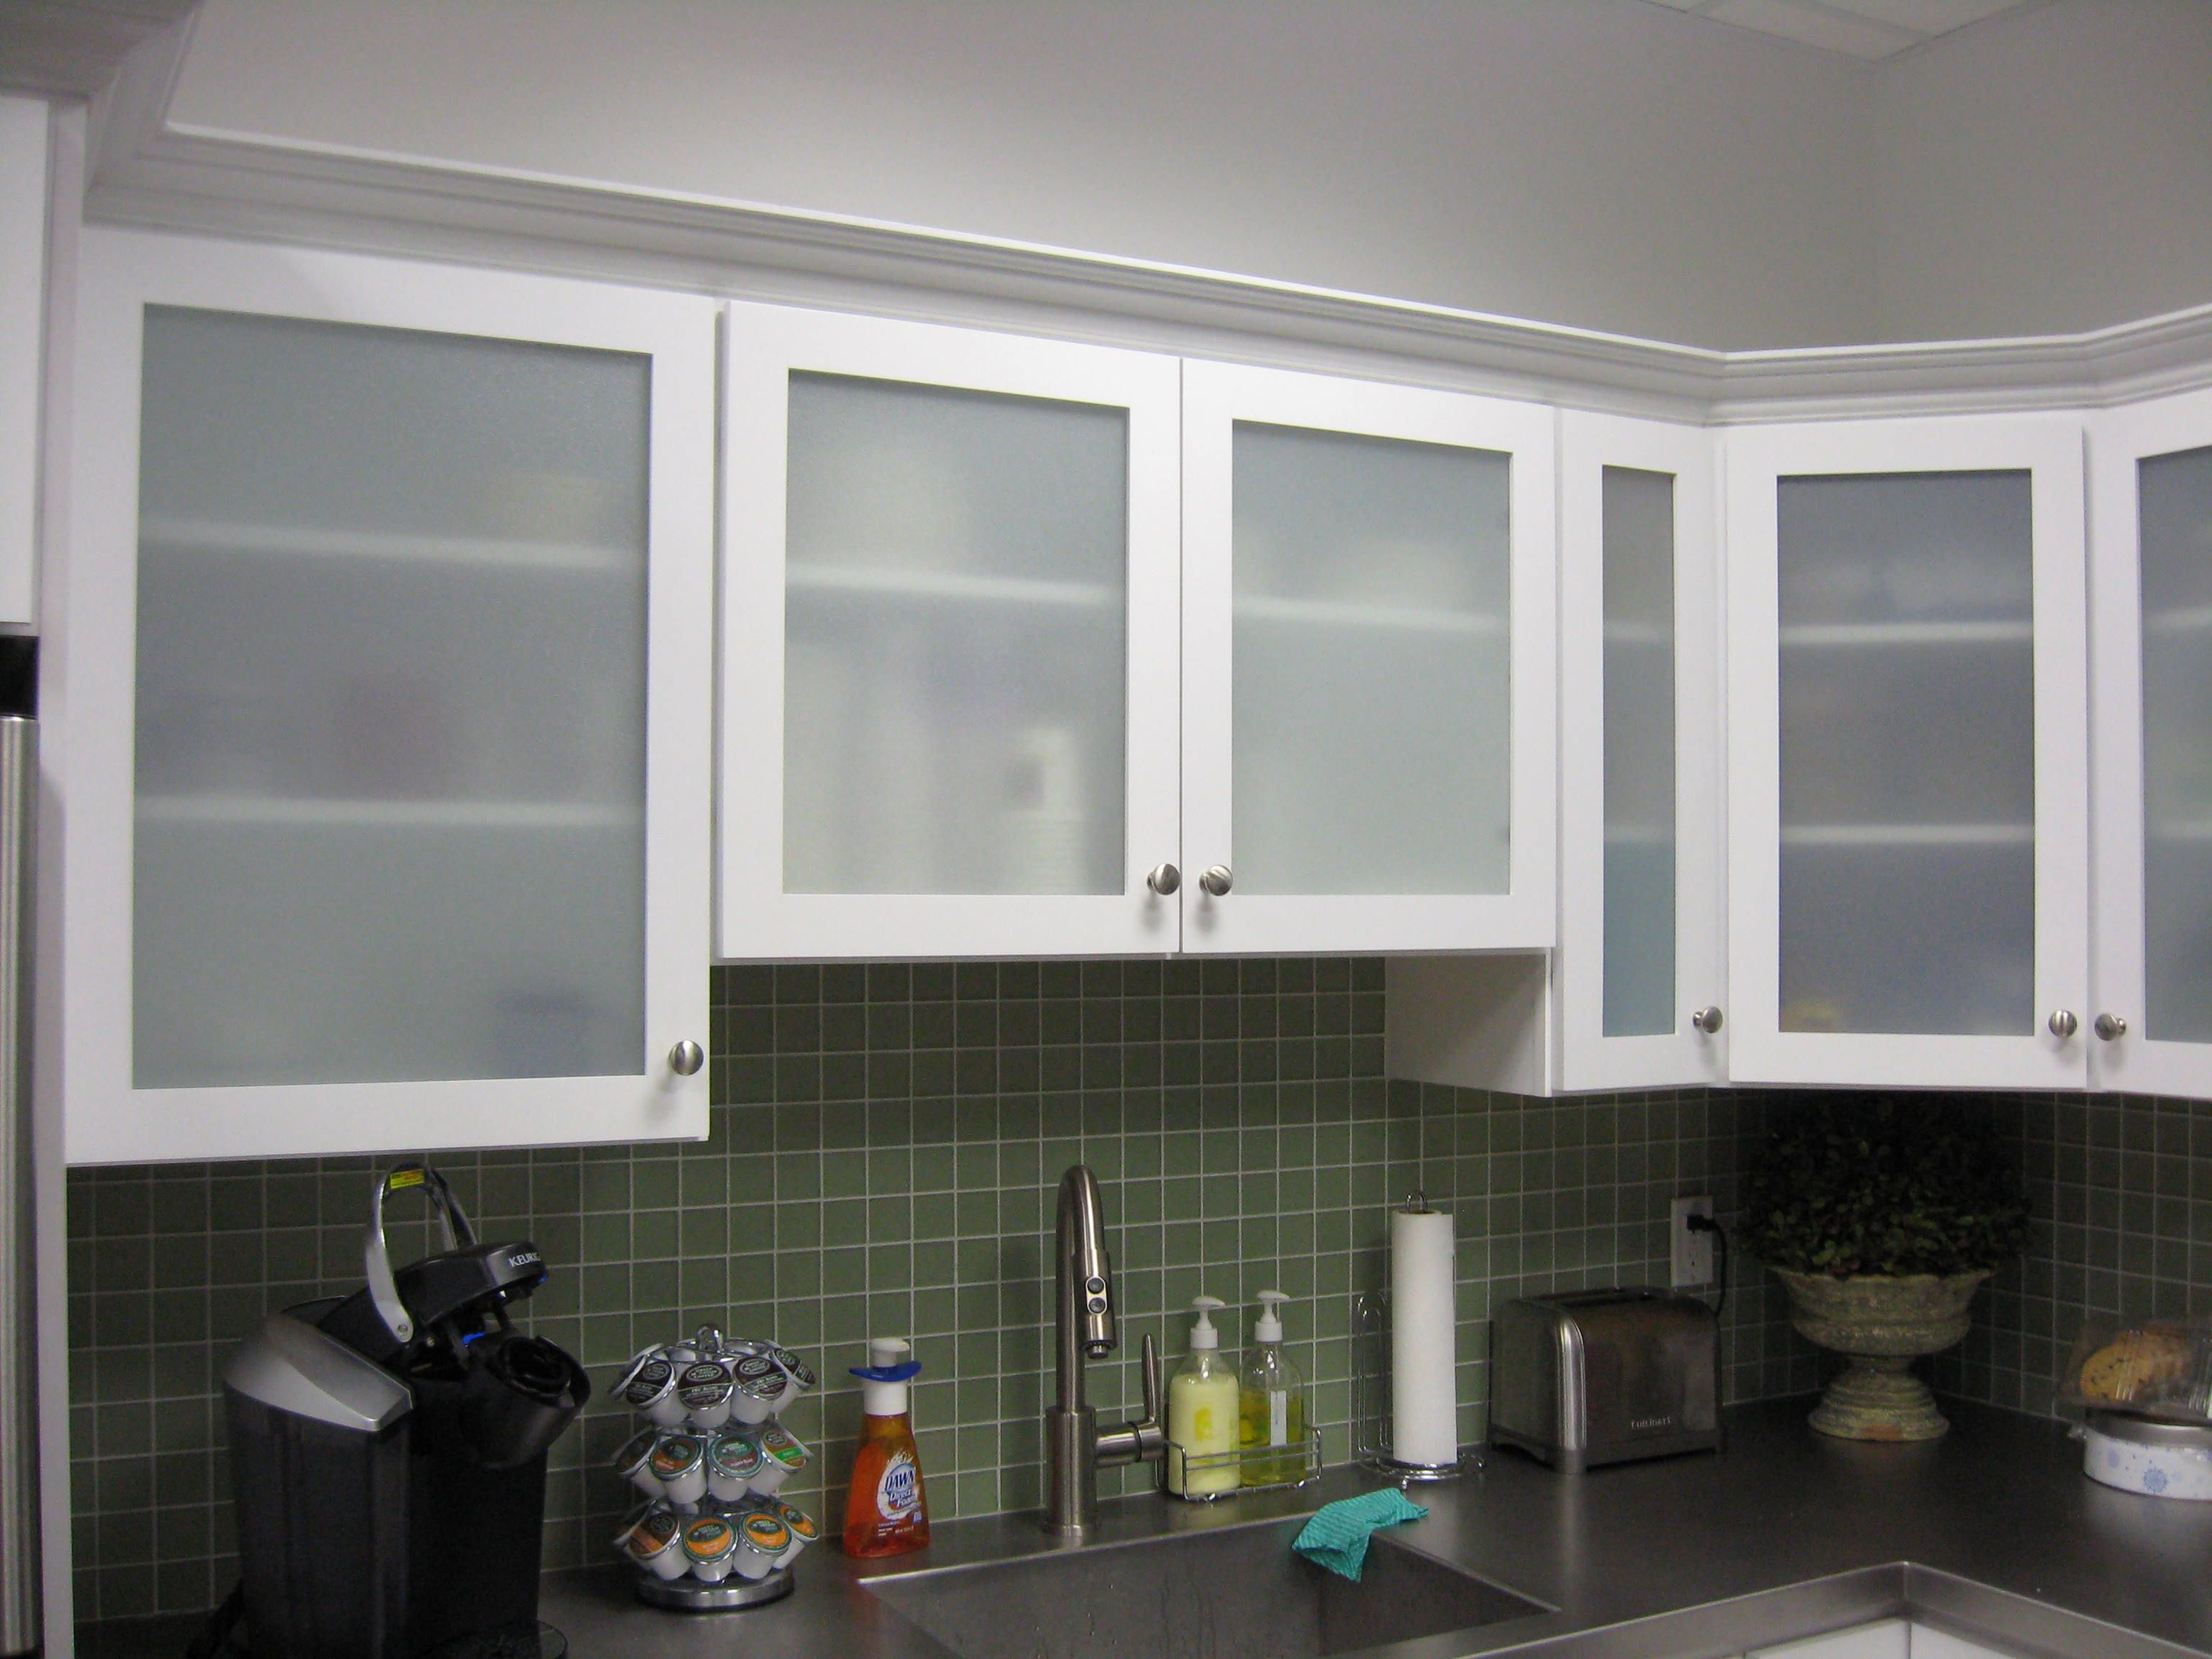 Custom Smoked Glass Cabinet Doors | http://betdaffaires.com | Pinterest